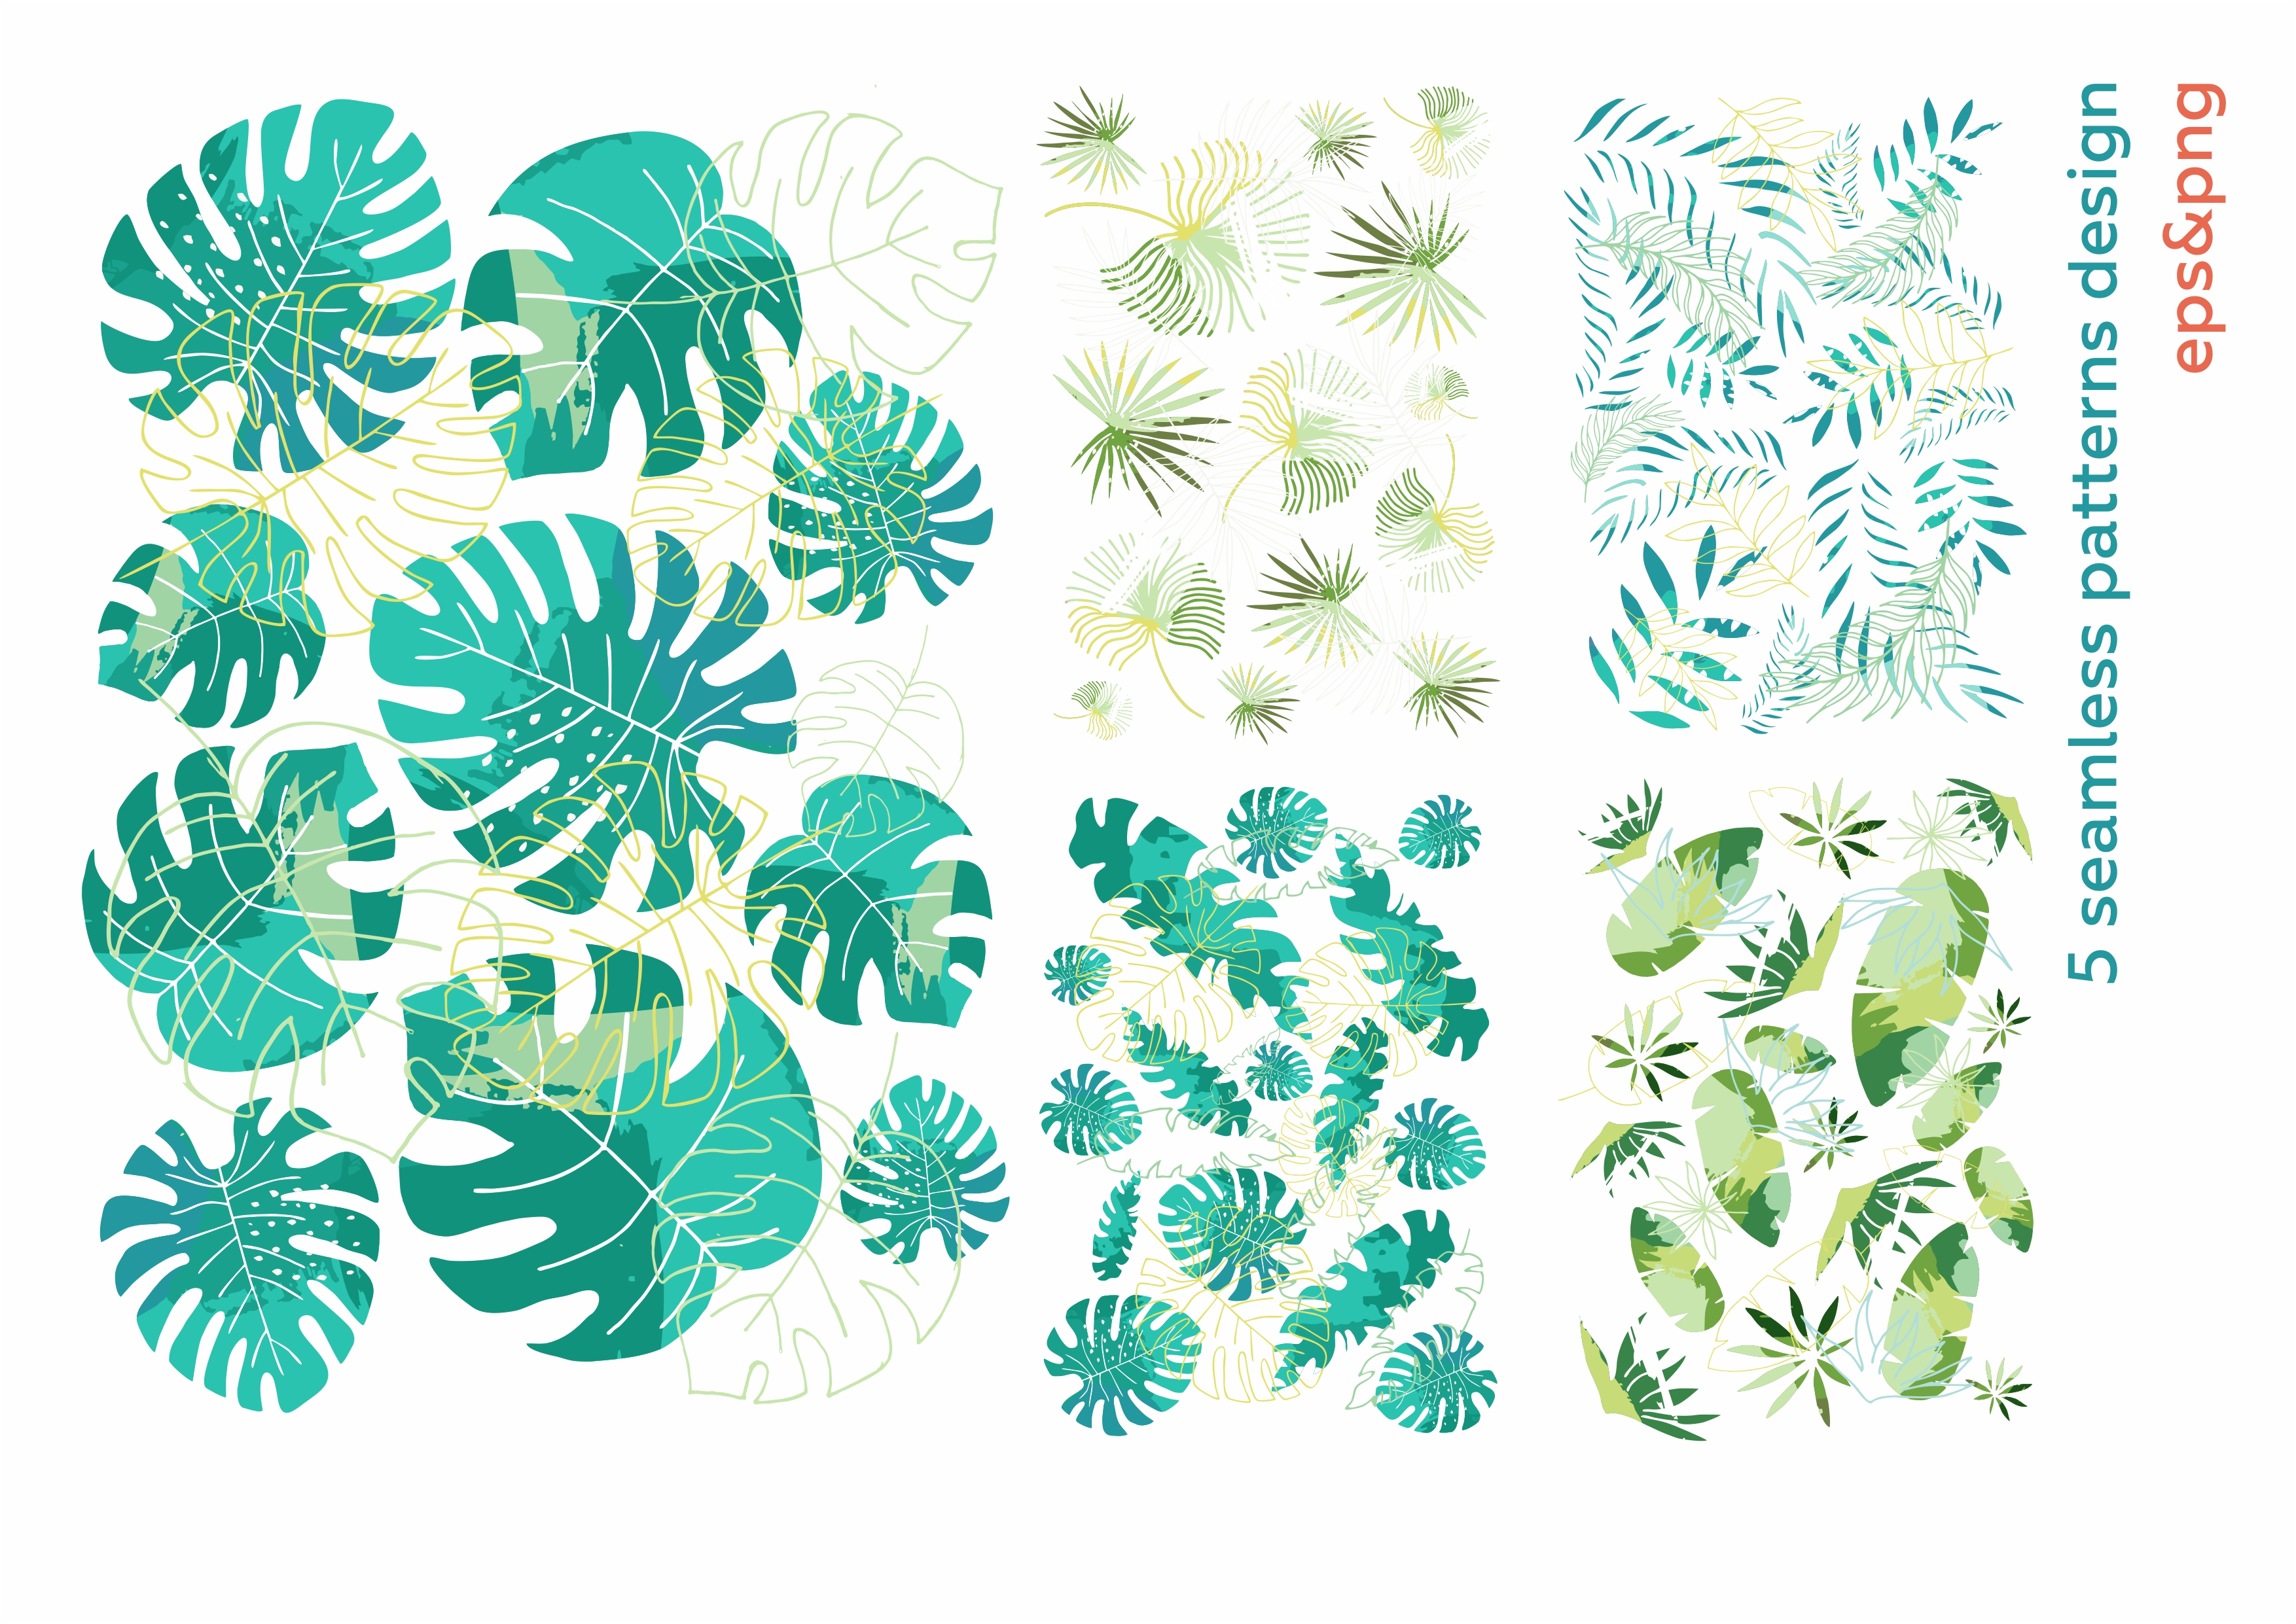 Hide in tropical leaves! Summer hand drawn patterns set example image 6